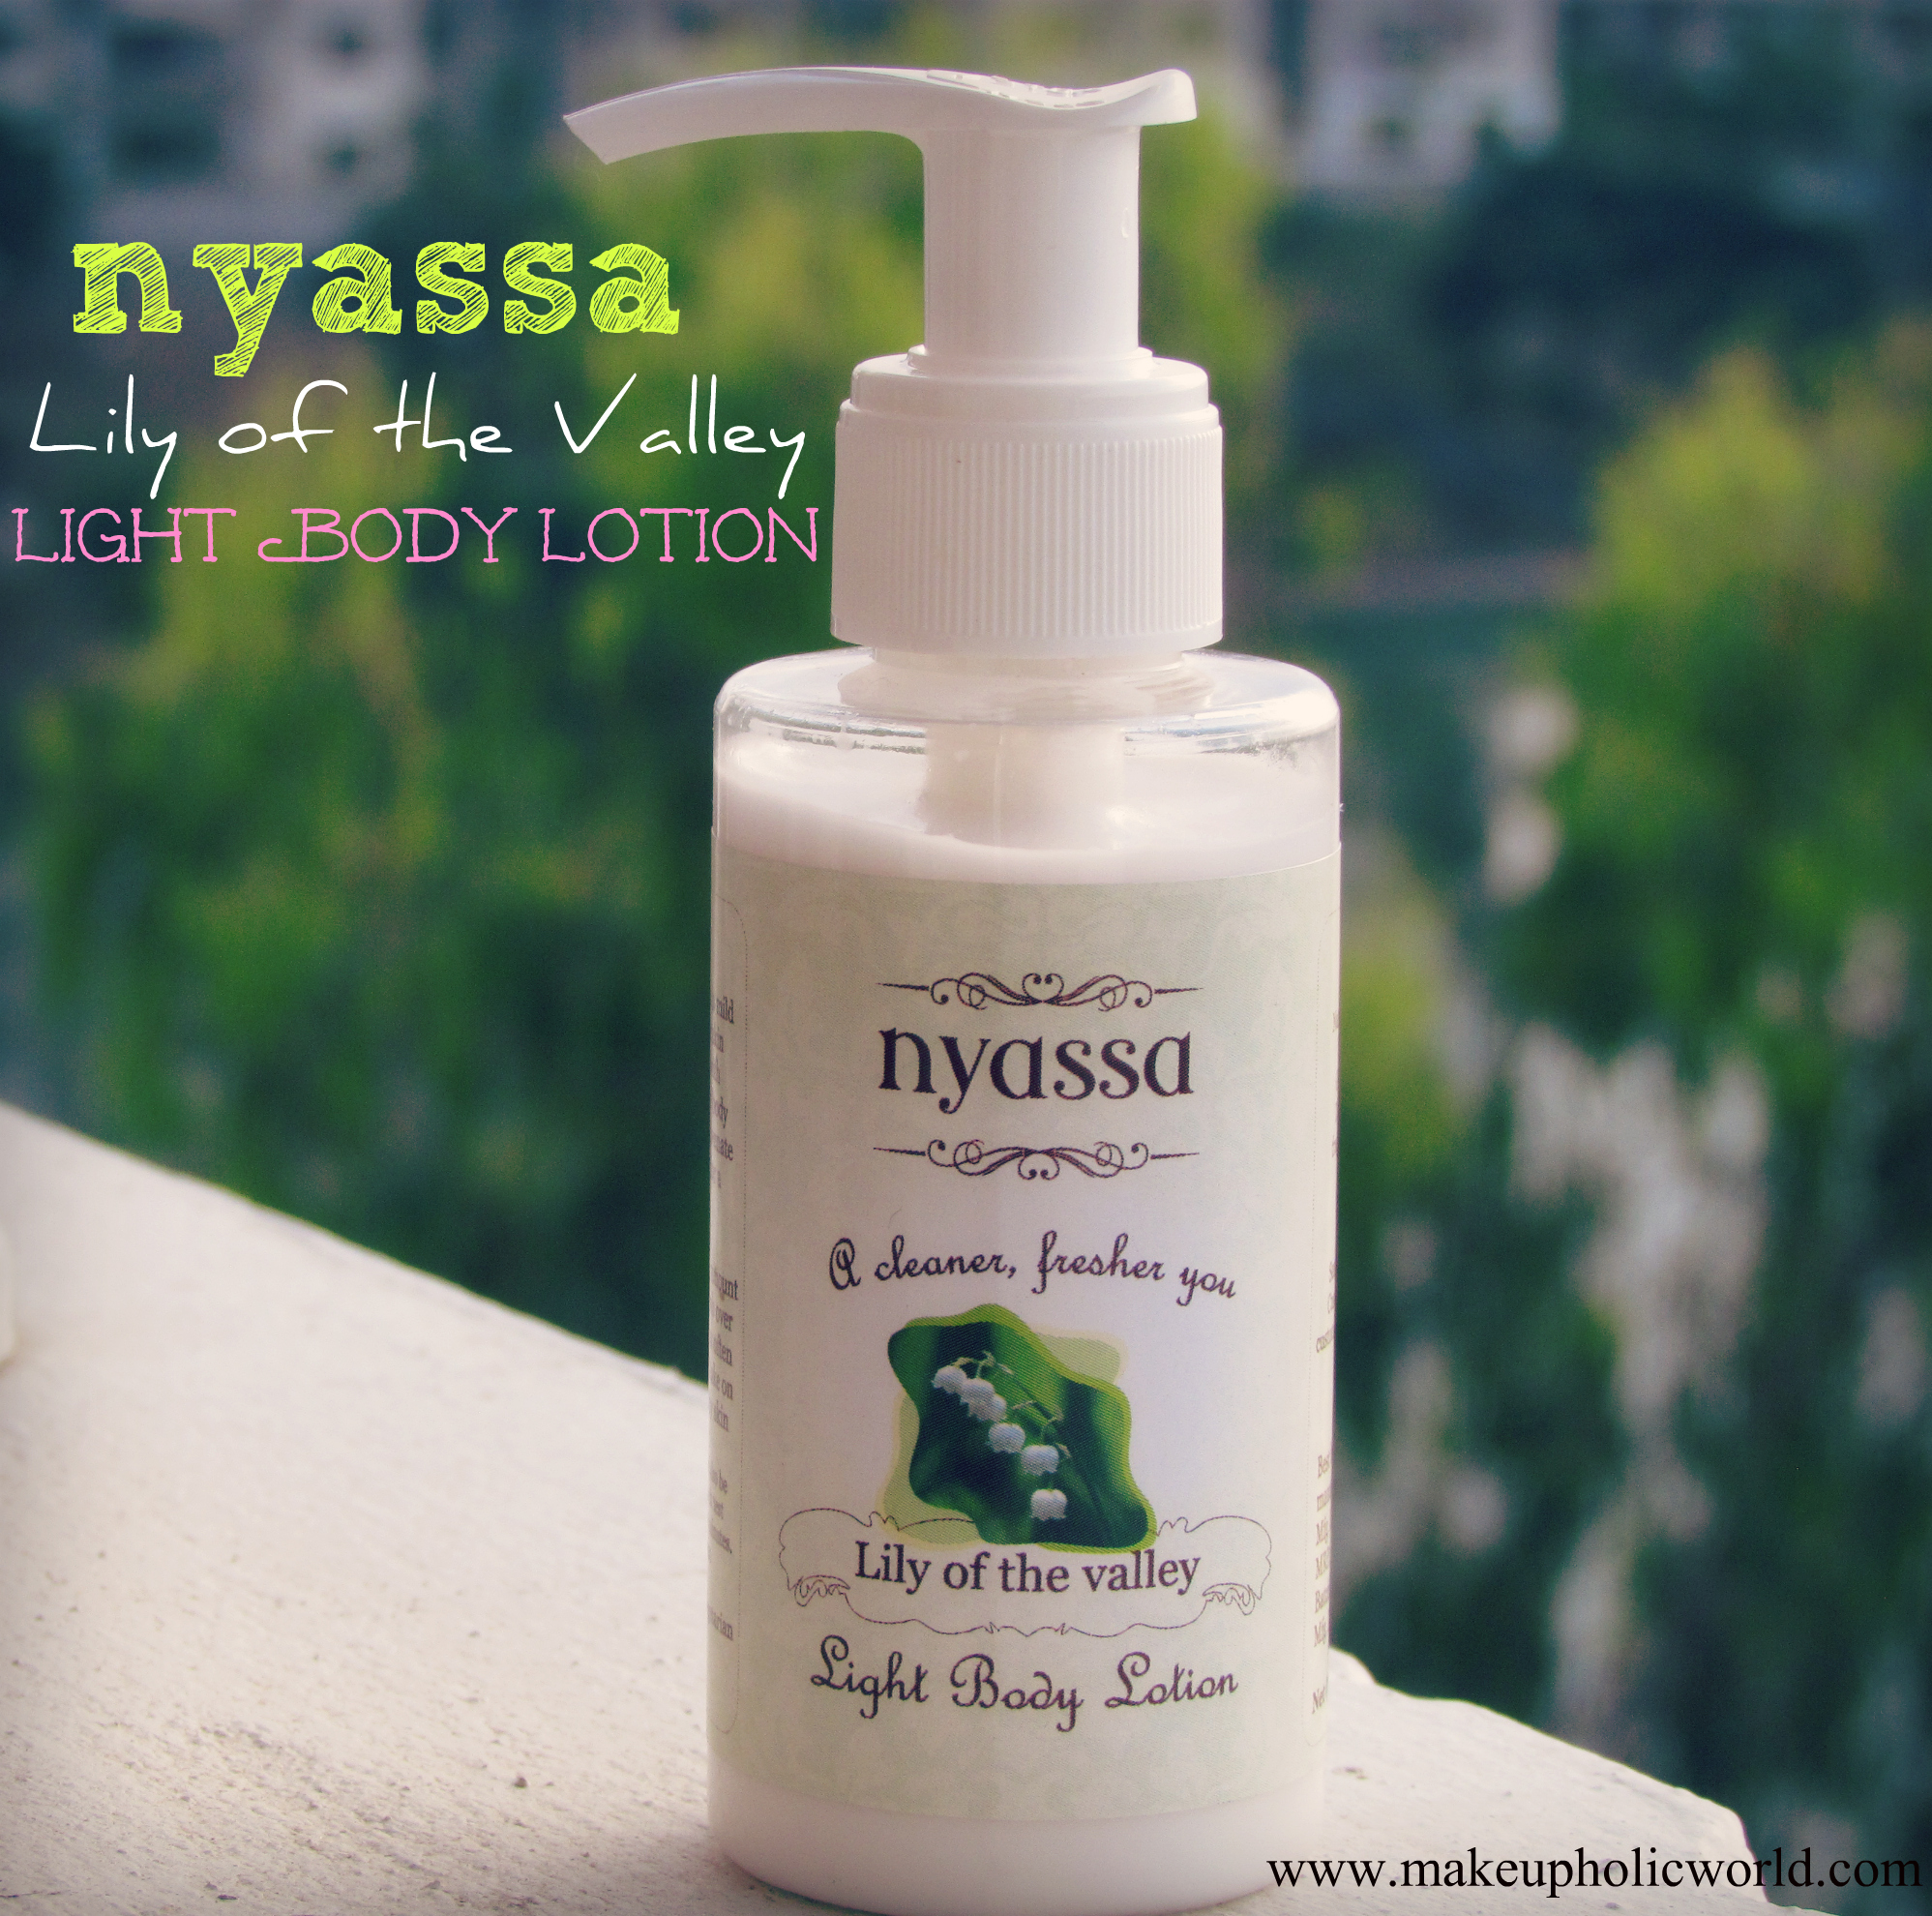 Nyassa Lily of the Valley Light body Lotion